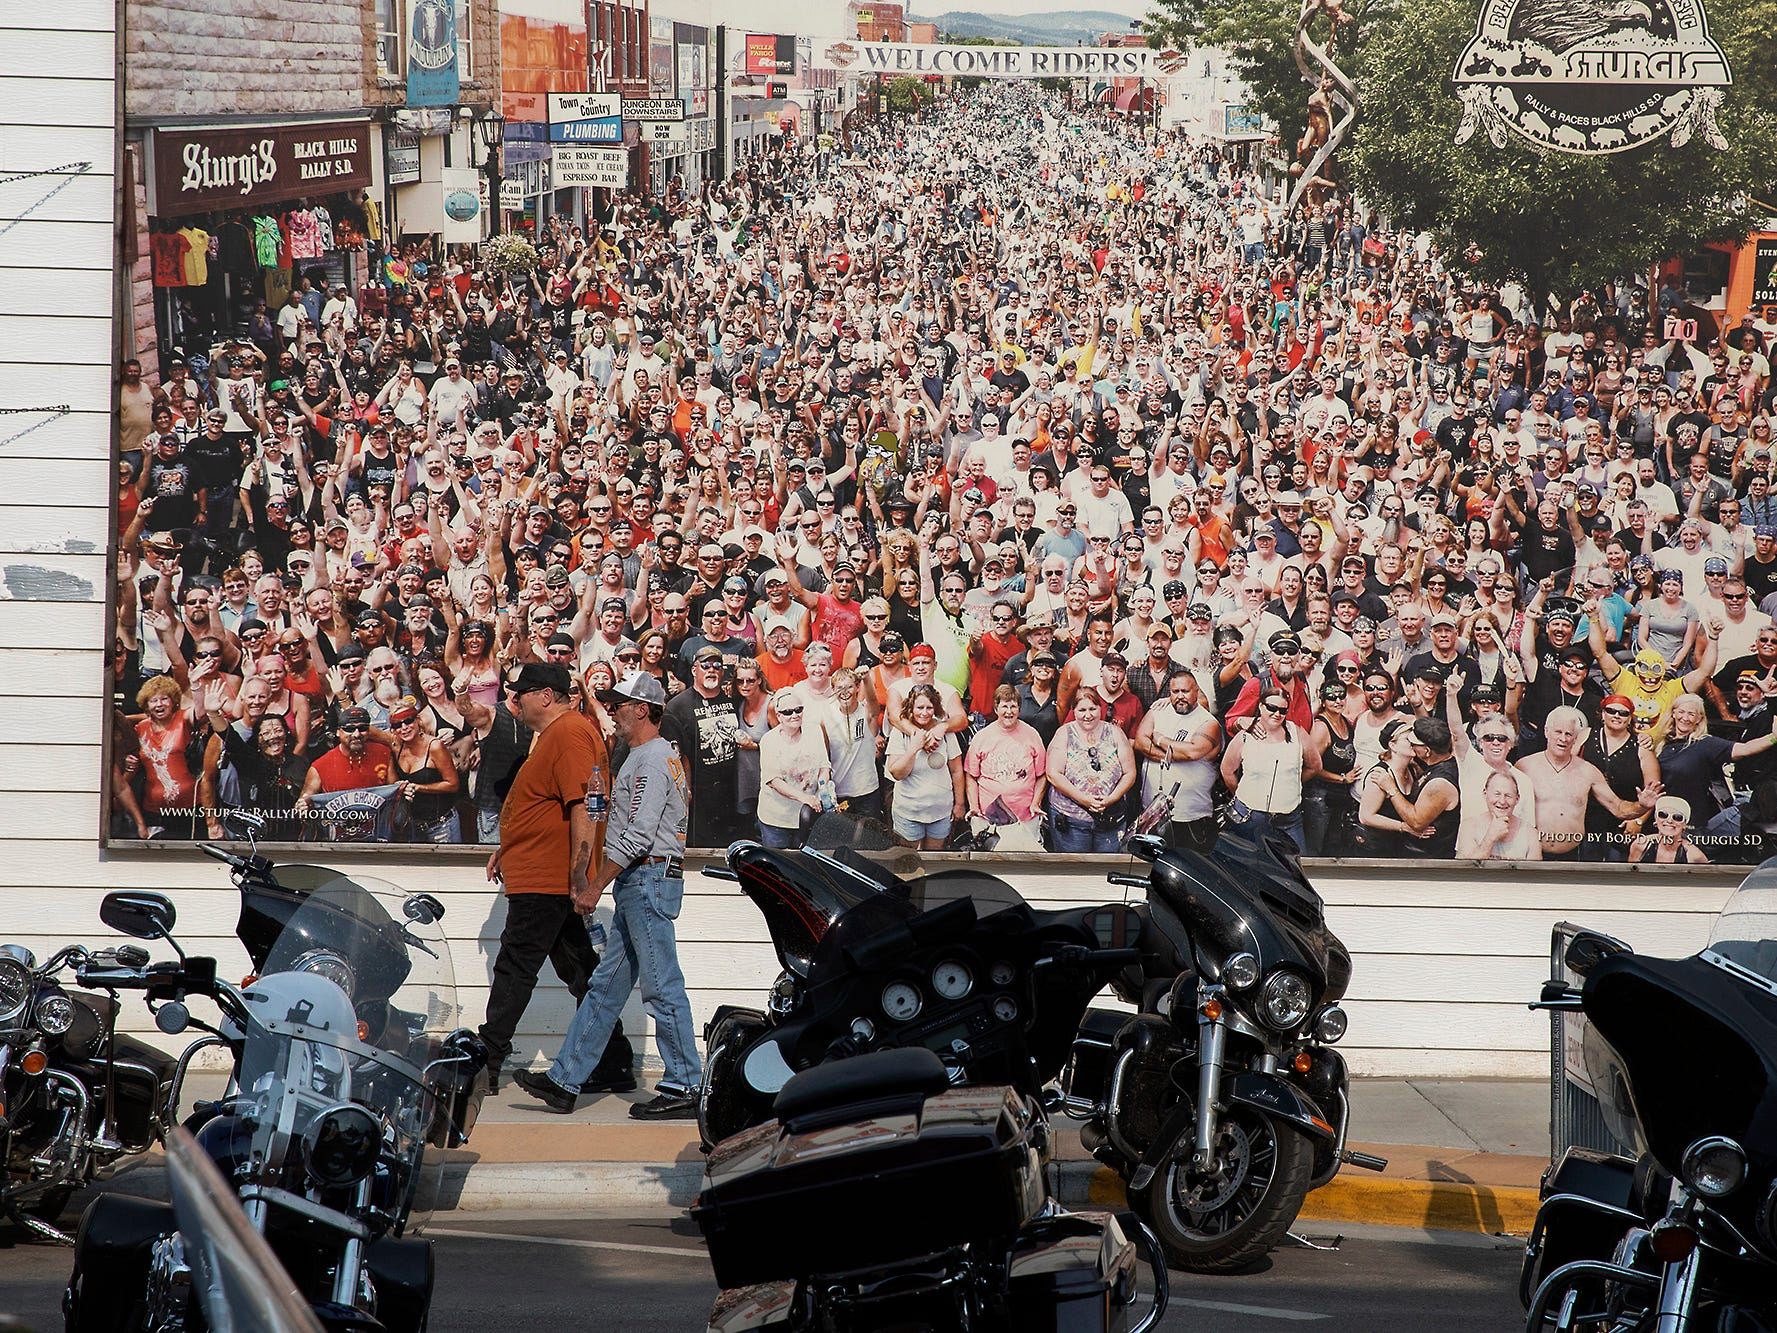 2018: People walk past a large print of a photograph taken during a previous motorcycle rally in downtown Sturgis, S.D.